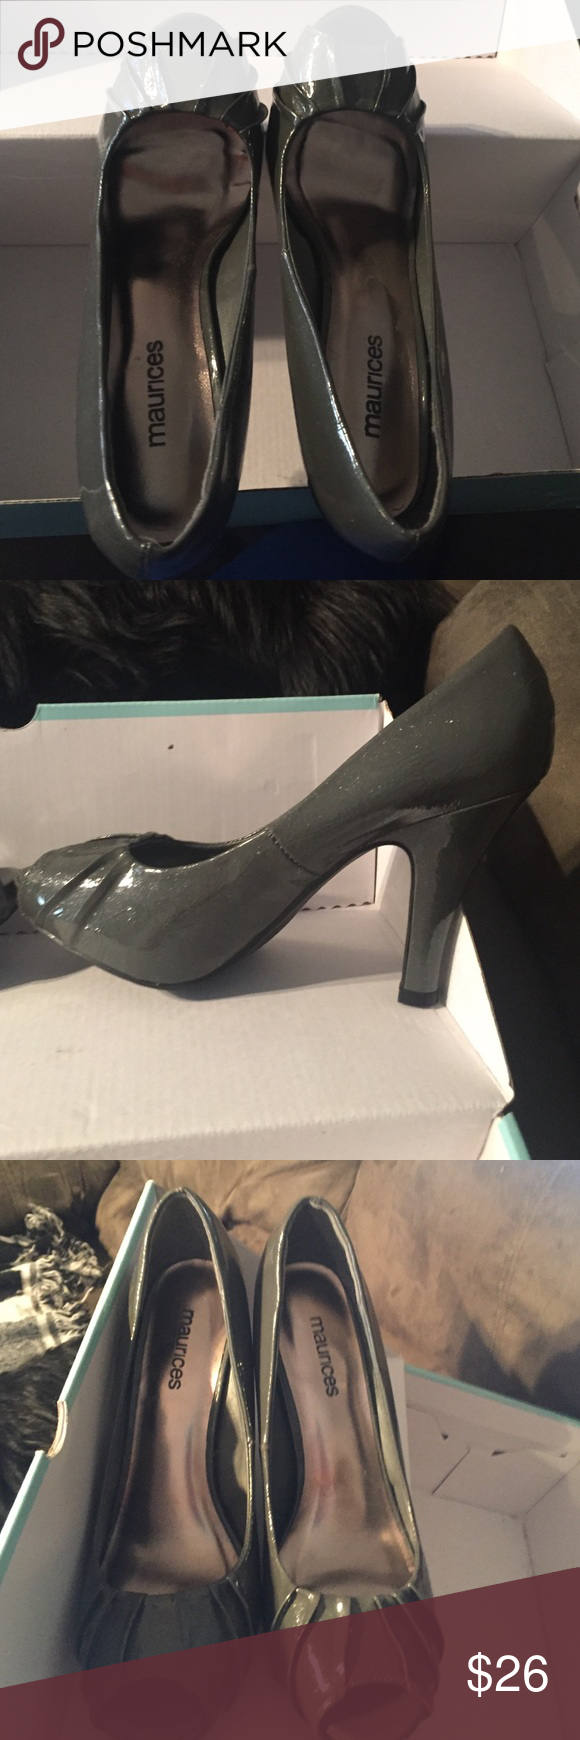 Maurice's gray Fern Crinkle peep toe heels 👠 -NWT Never worn still down n box heels. They have tiny sparkles throughout. Very sexy shoe Maurices Shoes Heels